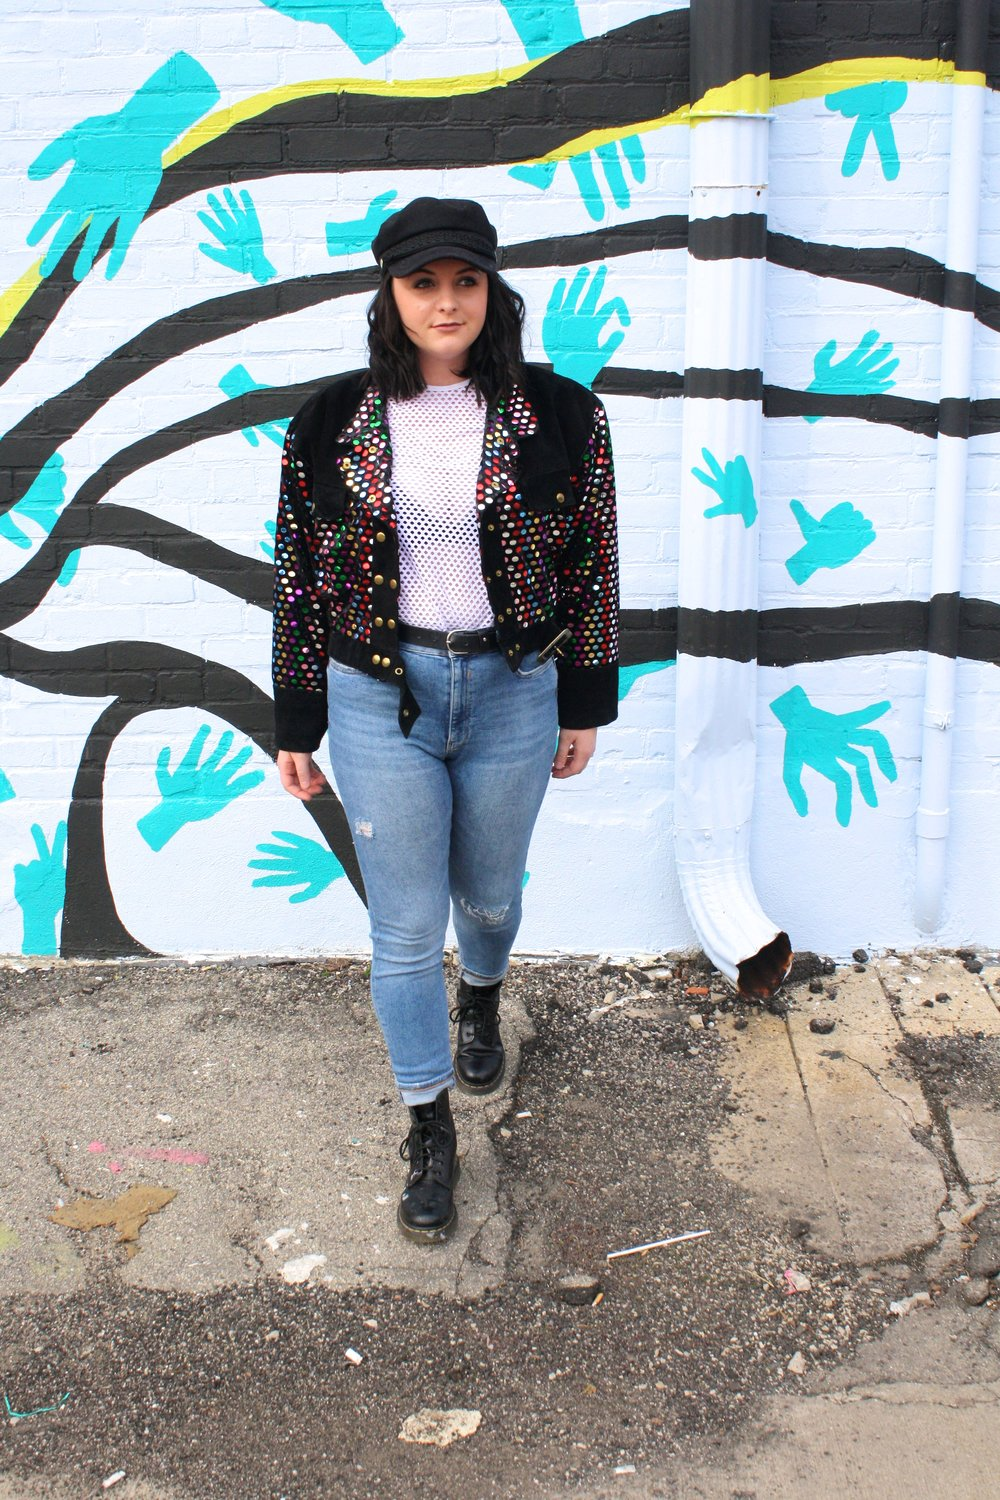 884480b5 Wearing: Marbles Vintage jacket | Depop hat and jeans | Poshmark t-shirt  and boots